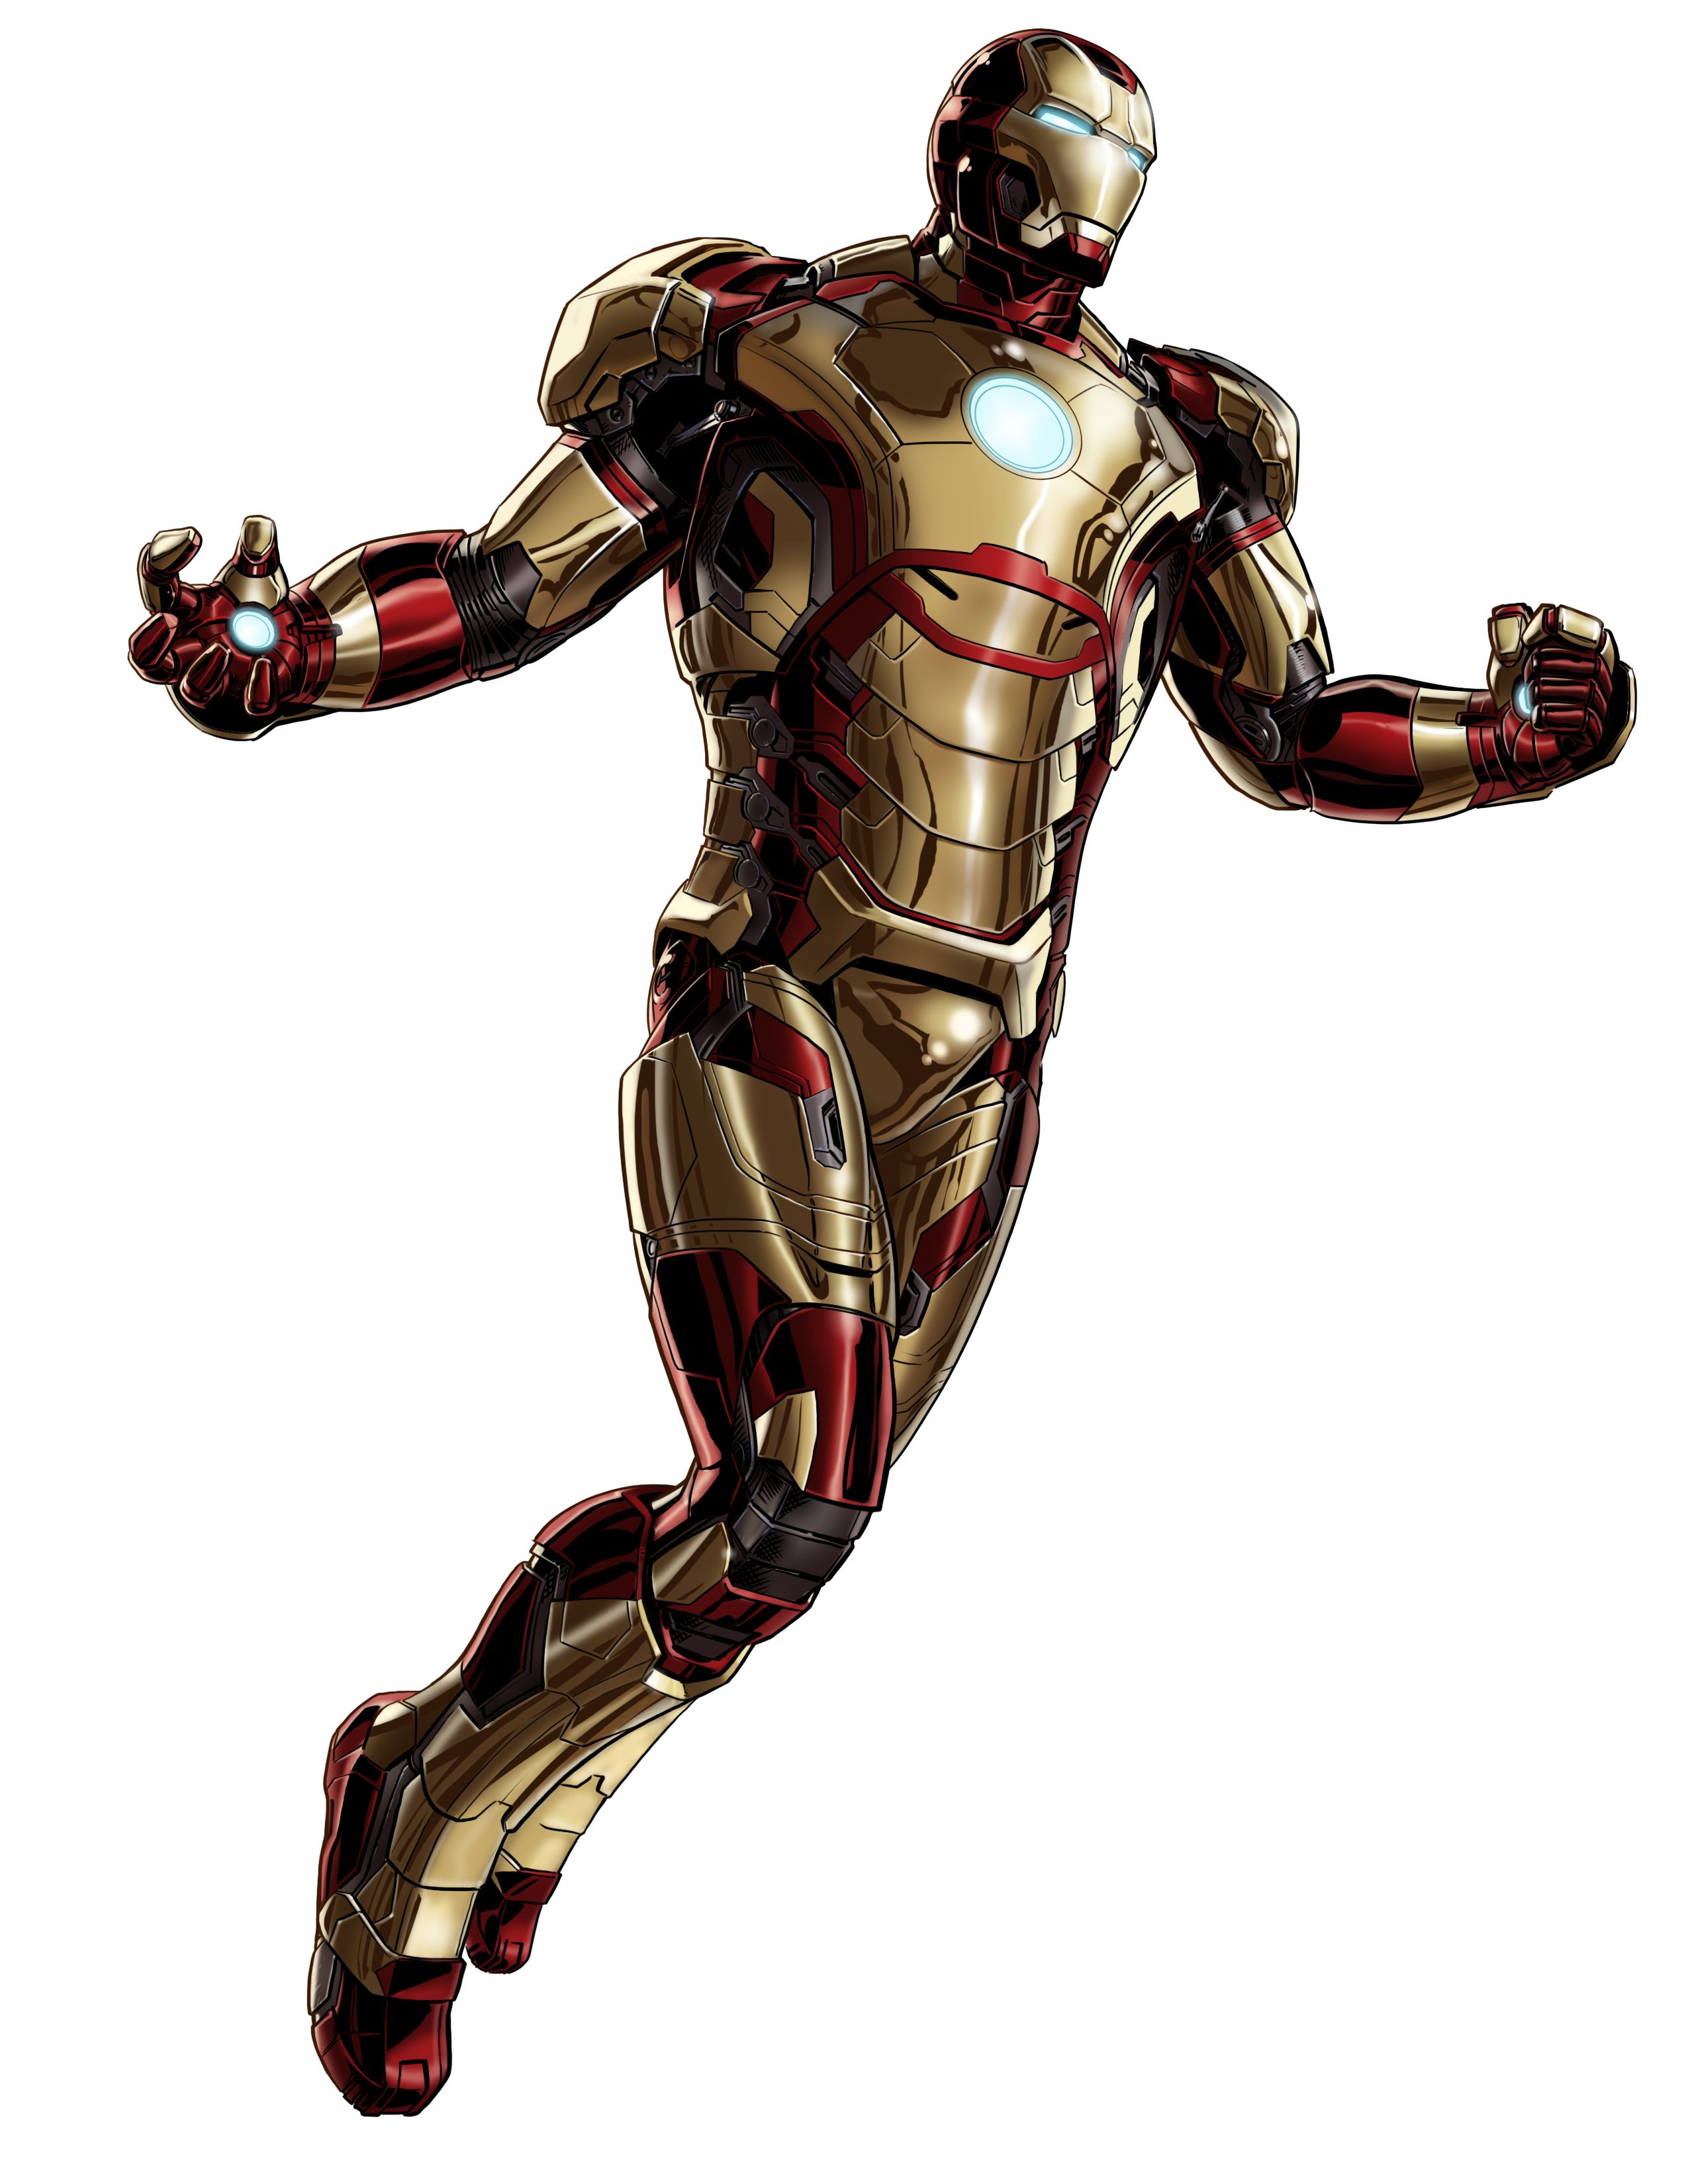 Image - Iron Man Mk 42 Armor Portrait Art.png - Marvel ...